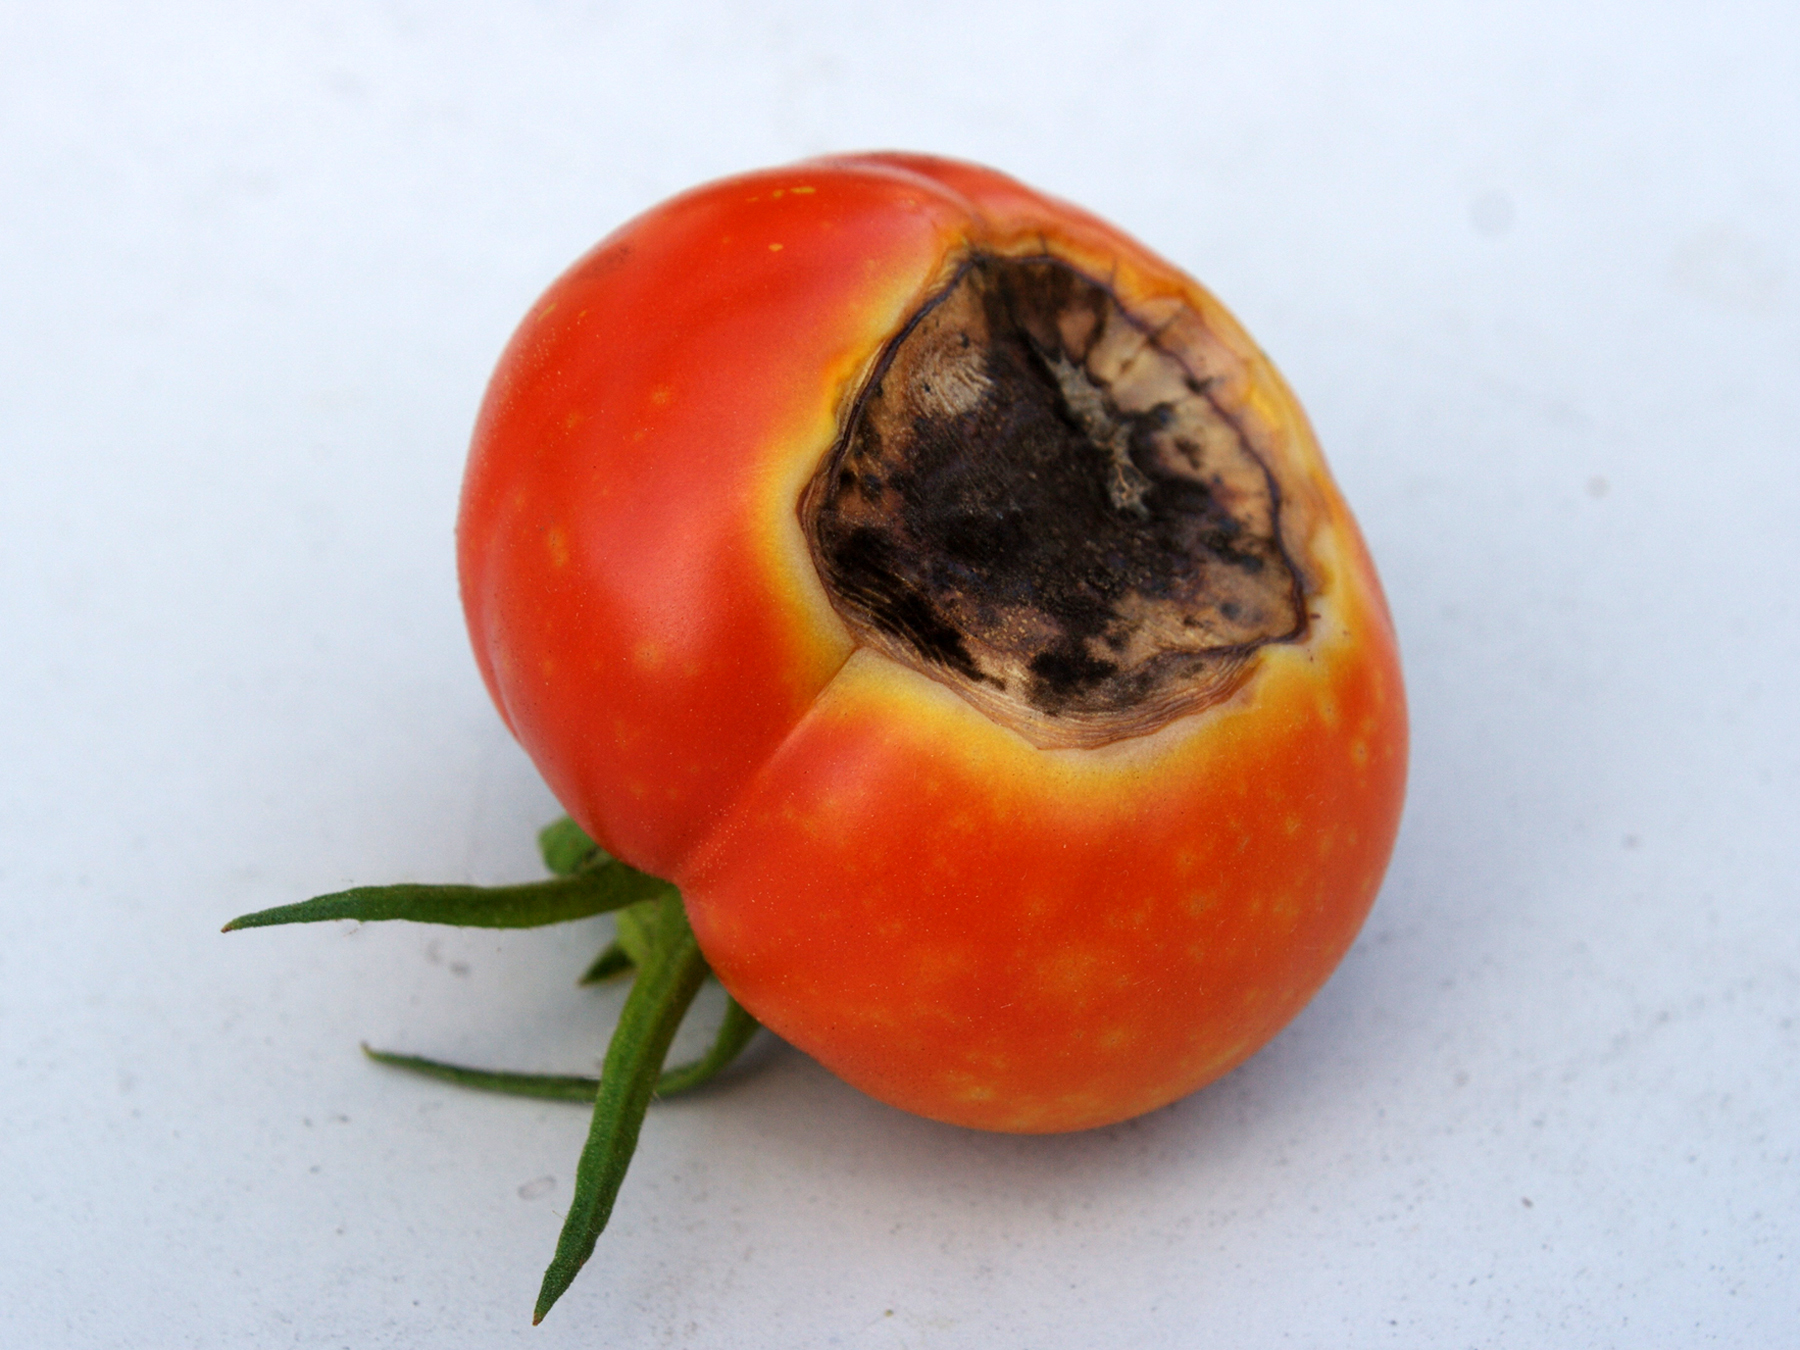 A lack of calcium in fruits will cause their bottoms to rot. (Photo courtesy of Mark, https://www.flickr.com/photos/eggrole/6011378943)